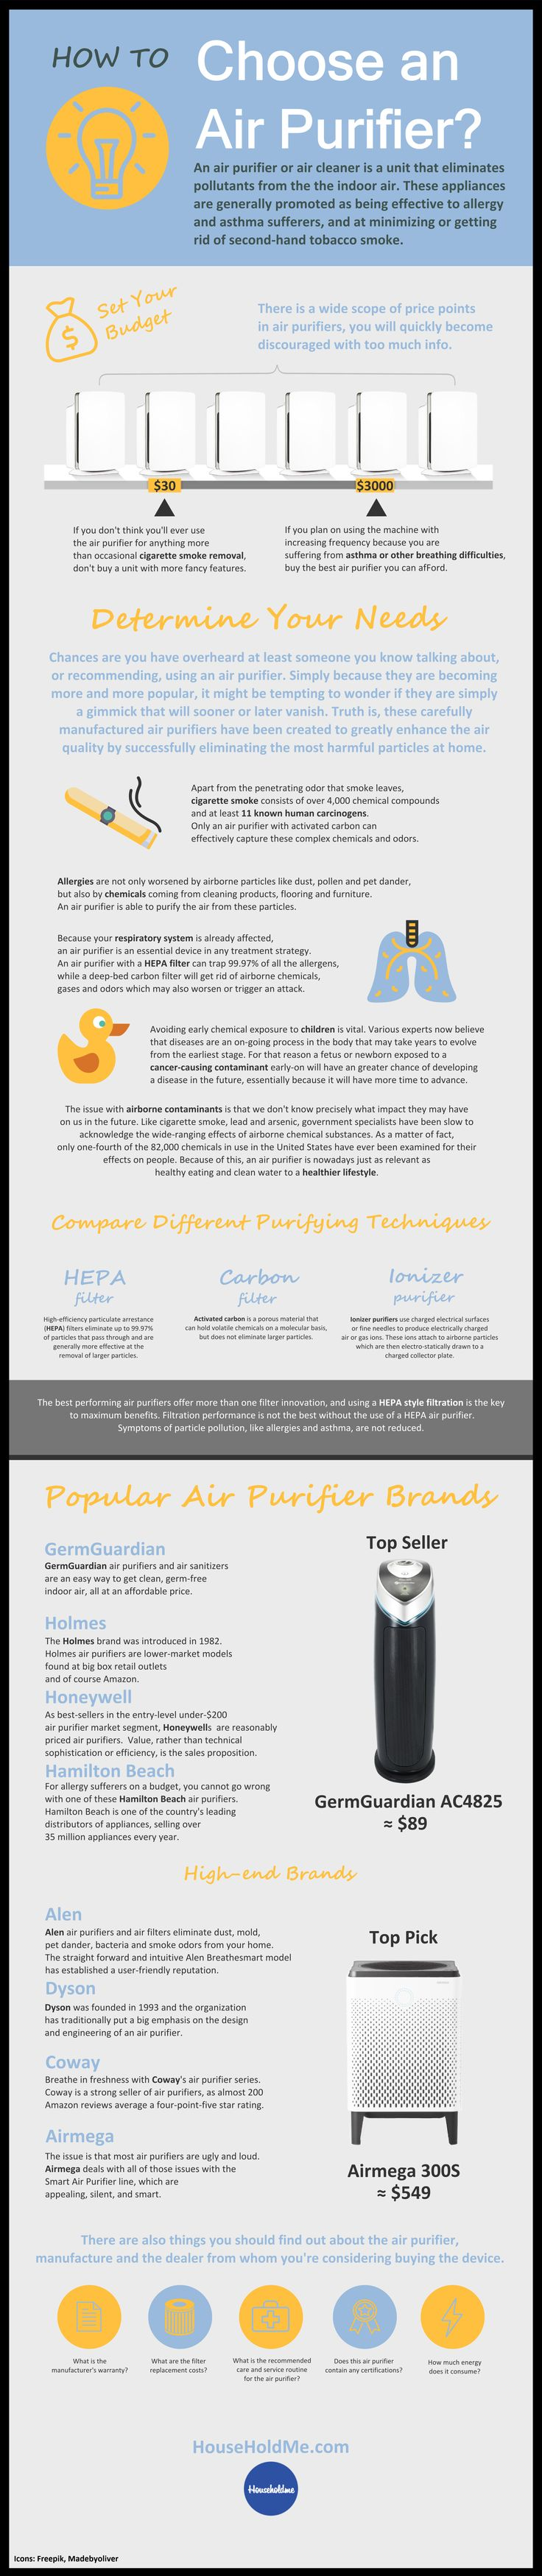 How to choose an air purifier?    An air purifier or air cleaner is a unit that eliminates pollutants from the the indoor air. These appliances are generally promoted as being effective to allergy and asthma sufferers, and at minimizing or getting rid of second-hand tobacco smoke.    #airpurifier #purifier #cleanair #alen #alenpurifier #dysonairpurifier #holmes #honeywell #coway #airmega #germguardian #hamiltonbeach #cleanerair #indoorair #householdme #bestpurifiers